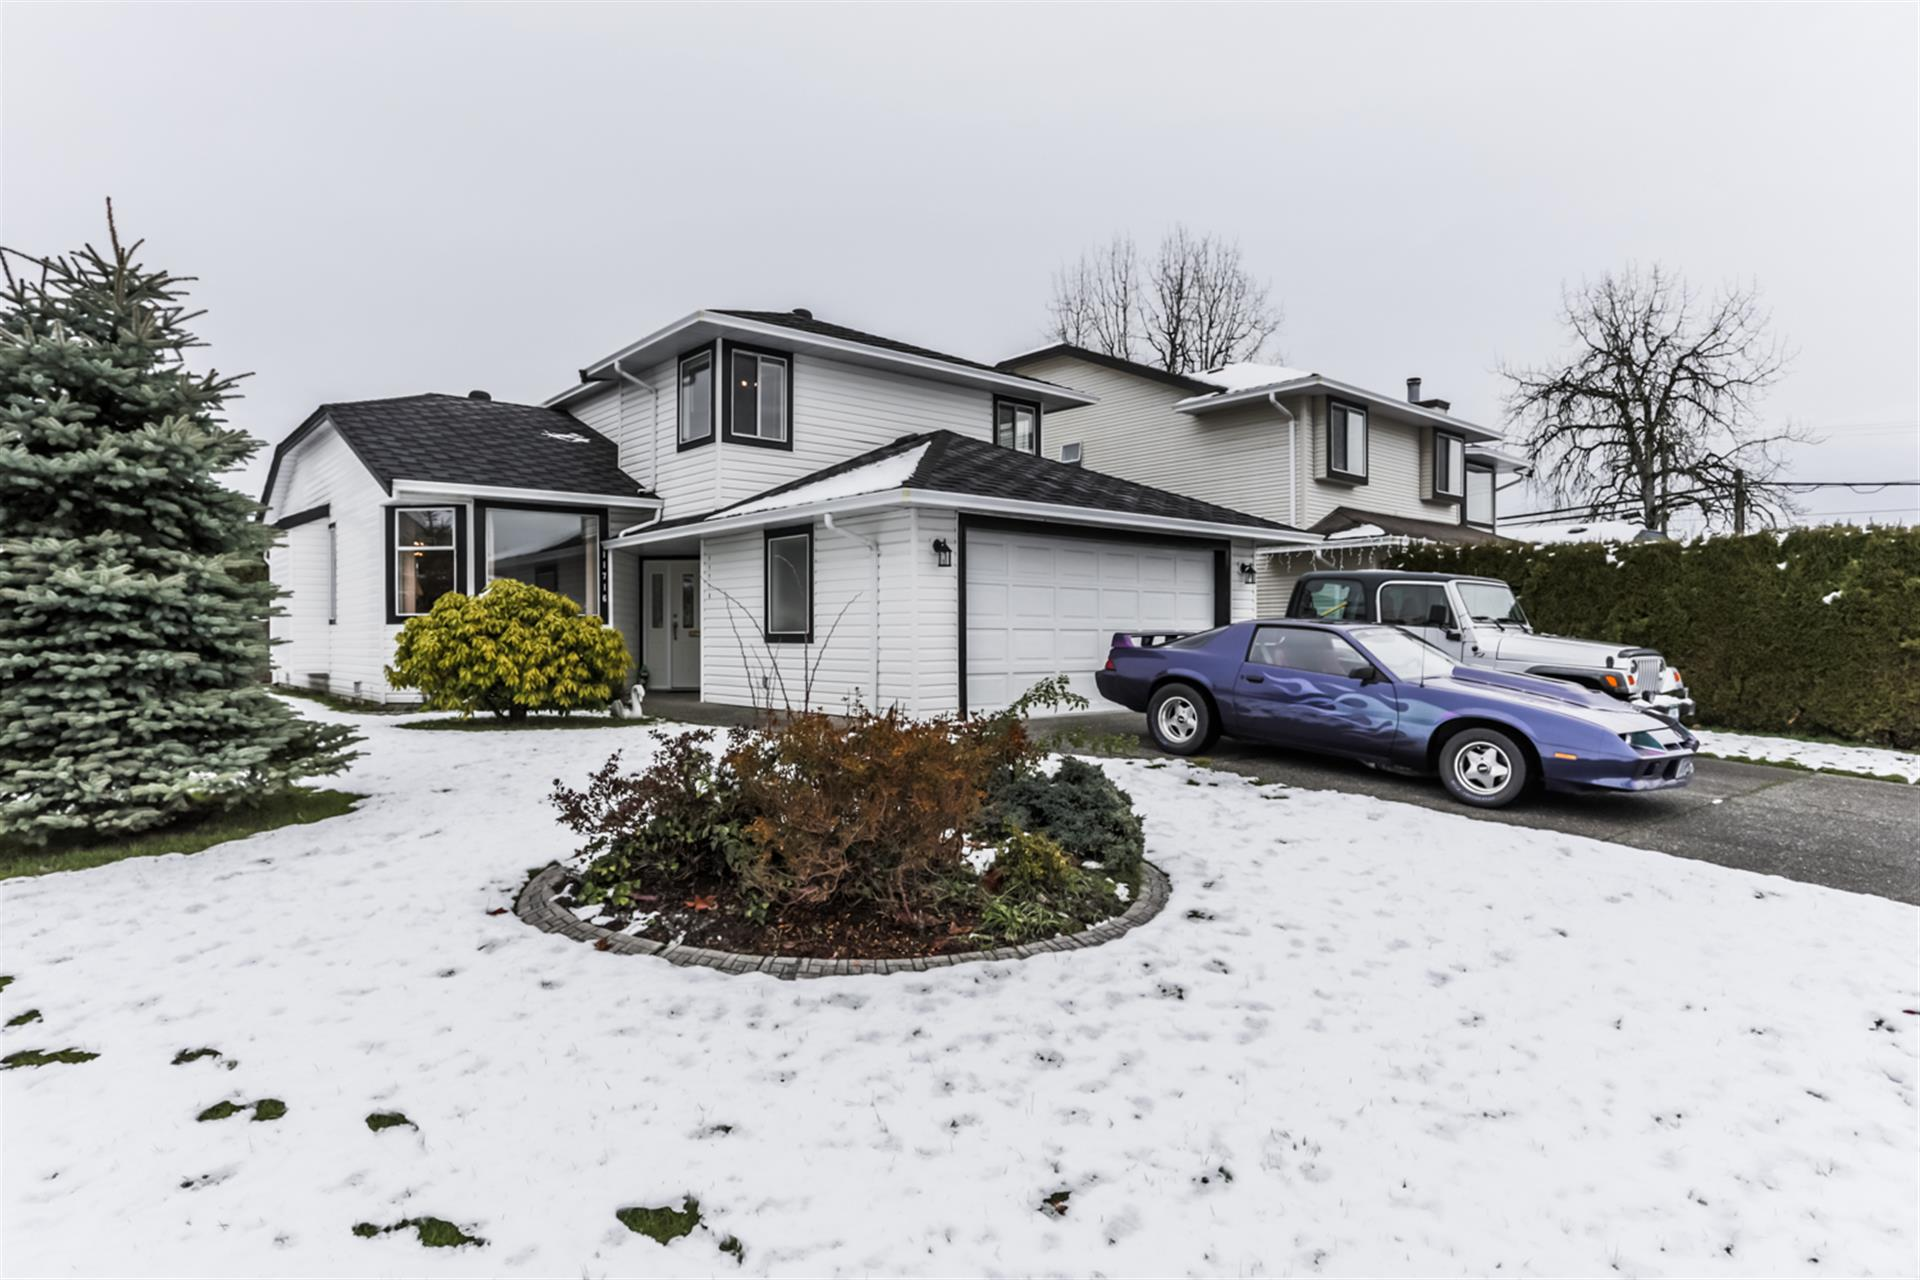 Main Photo: 11716 231B Street in Maple Ridge: East Central House for sale : MLS® # R2229621